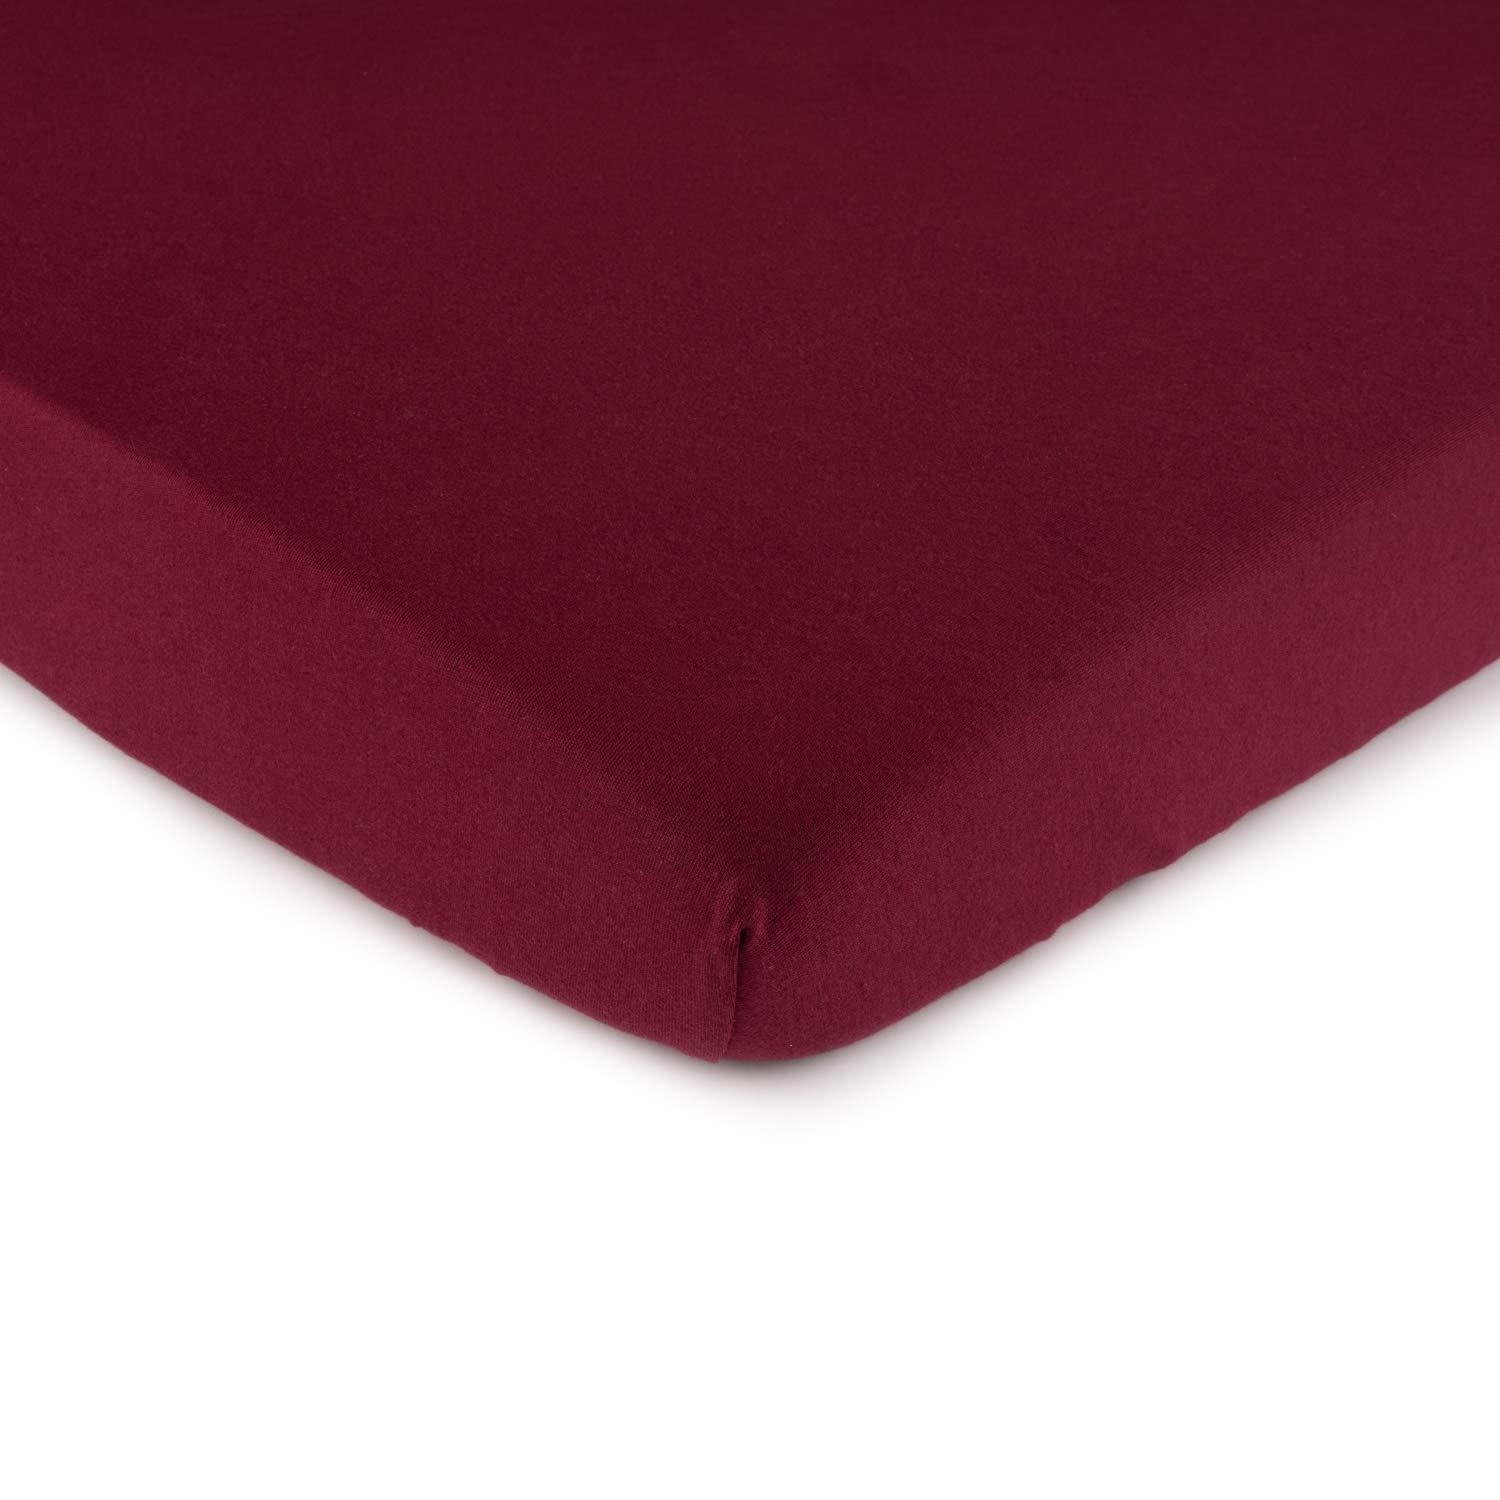 SheetWorld Fitted 100% Cotton Jersey Cradle Sheet 18 x 36, Burgundy, Made in USA by SHEETWORLD.COM